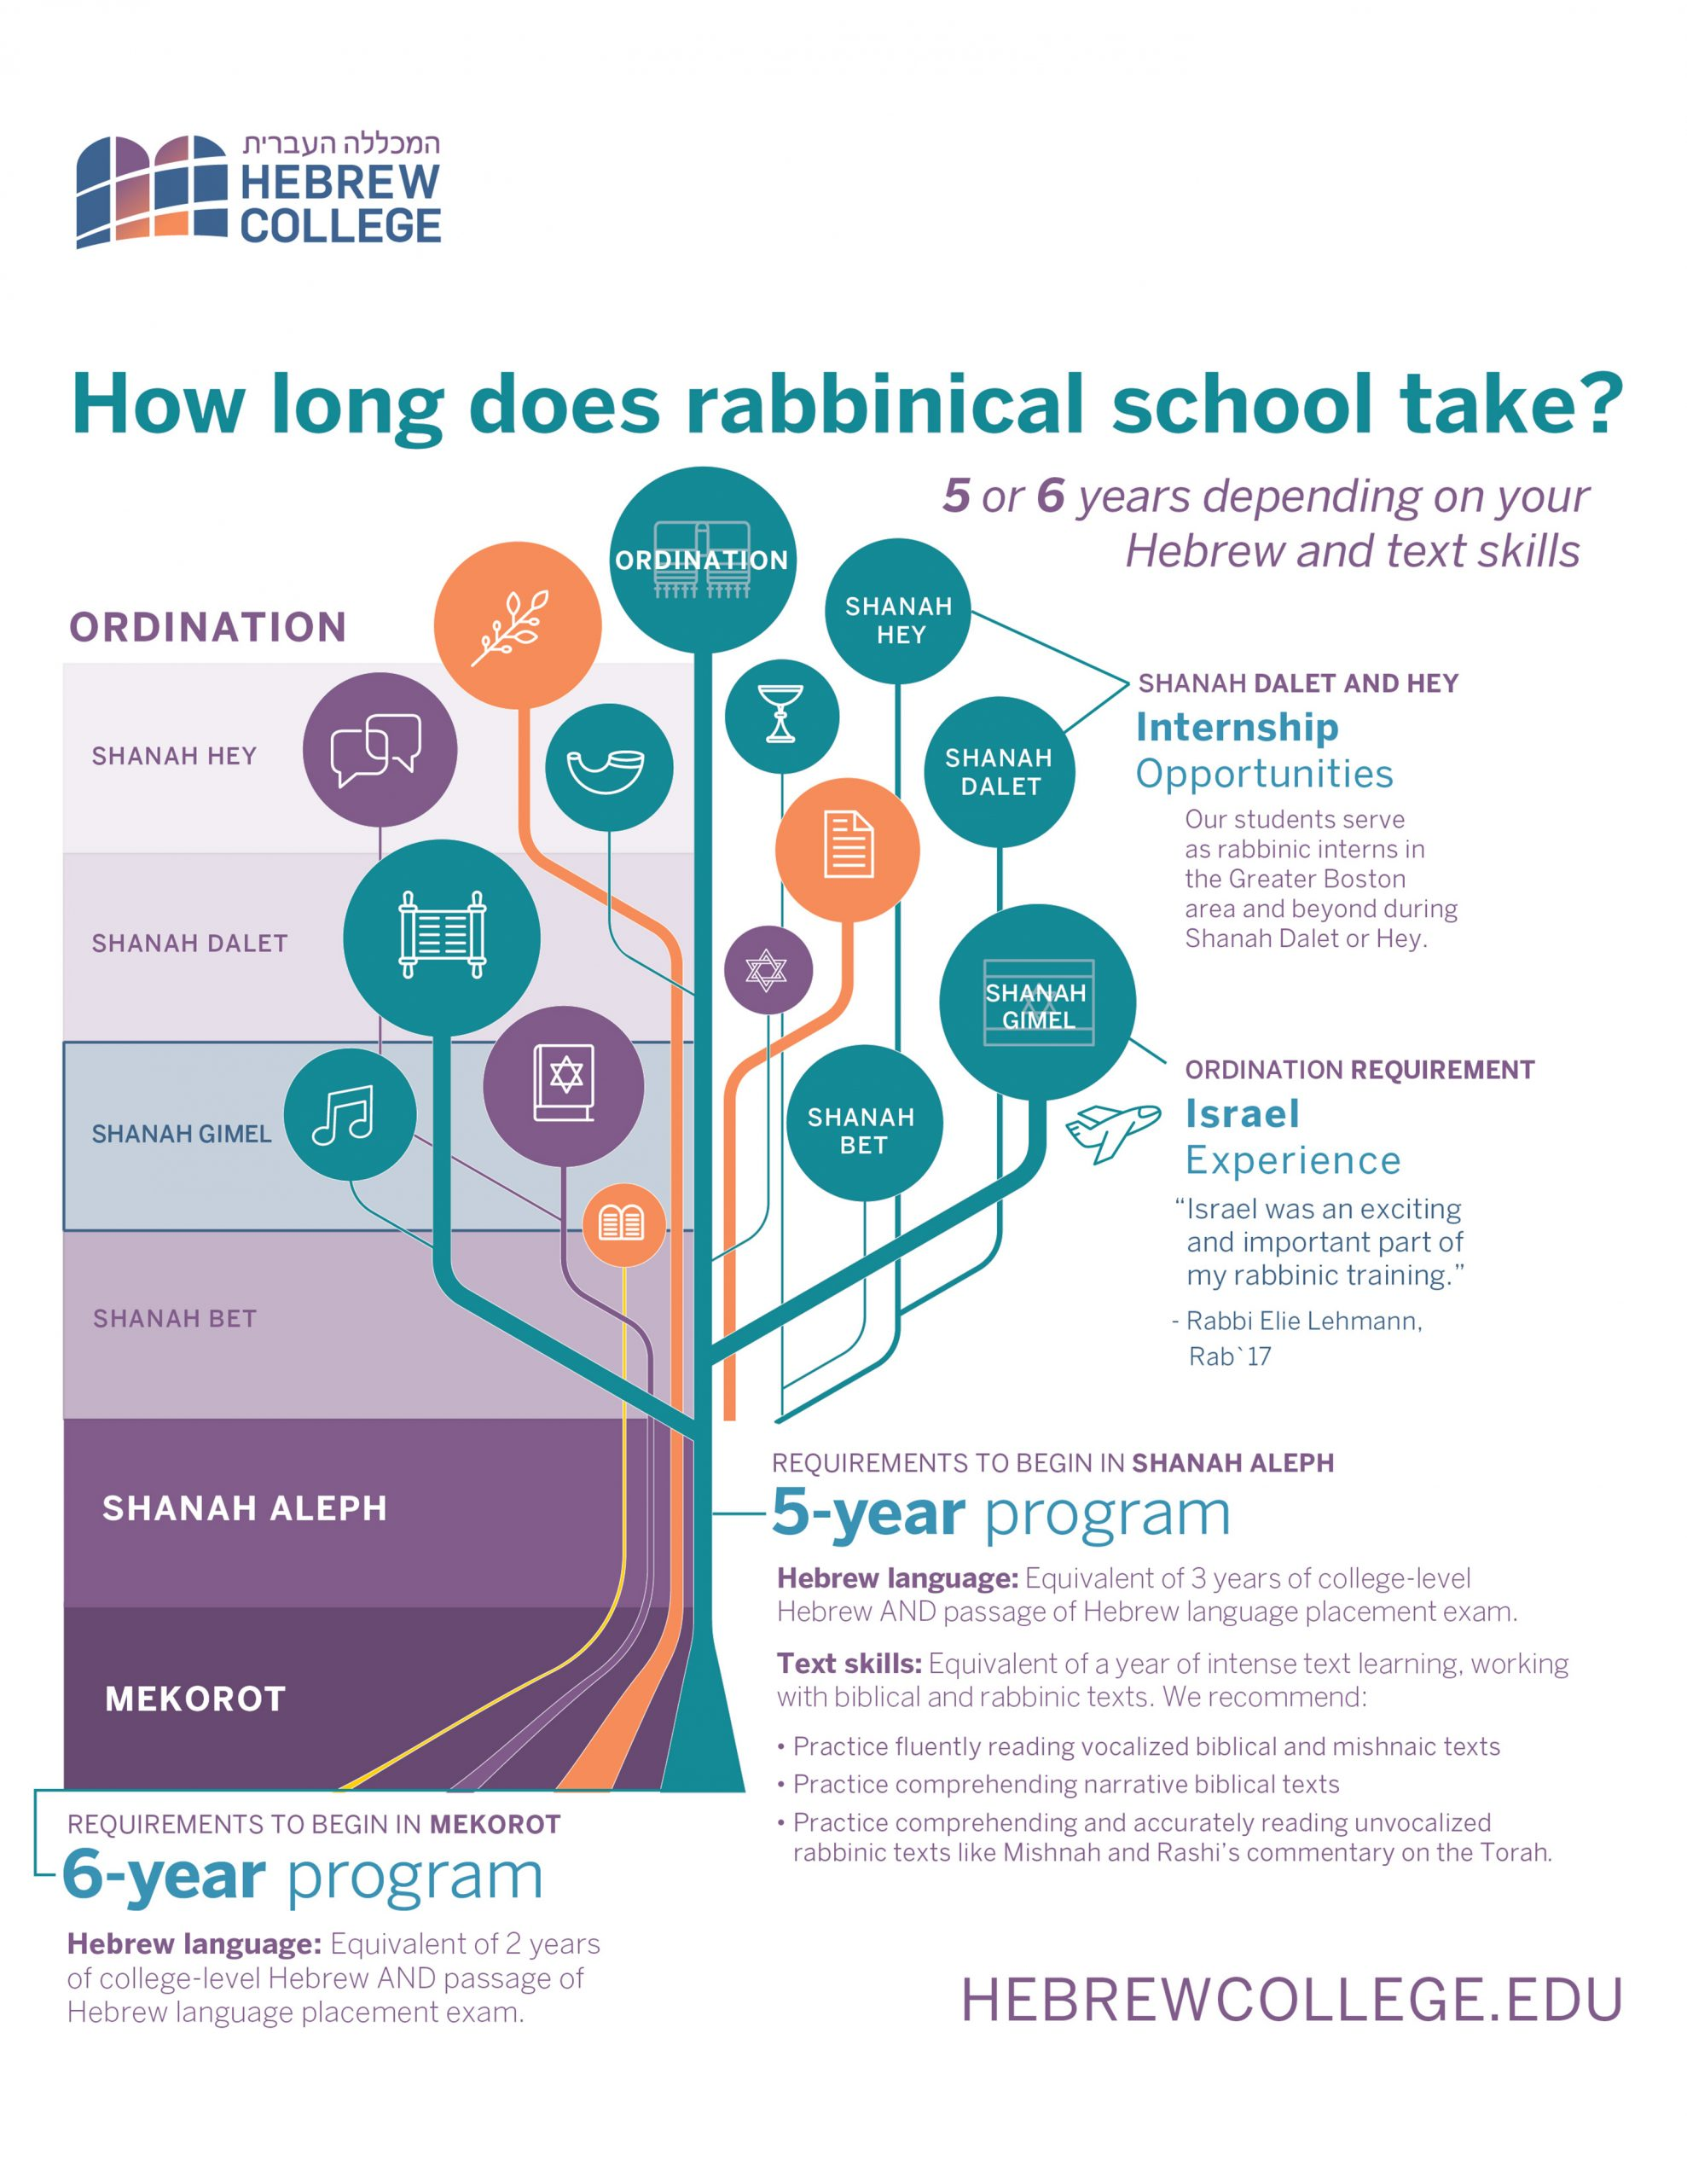 How long does Rabbinical school take?